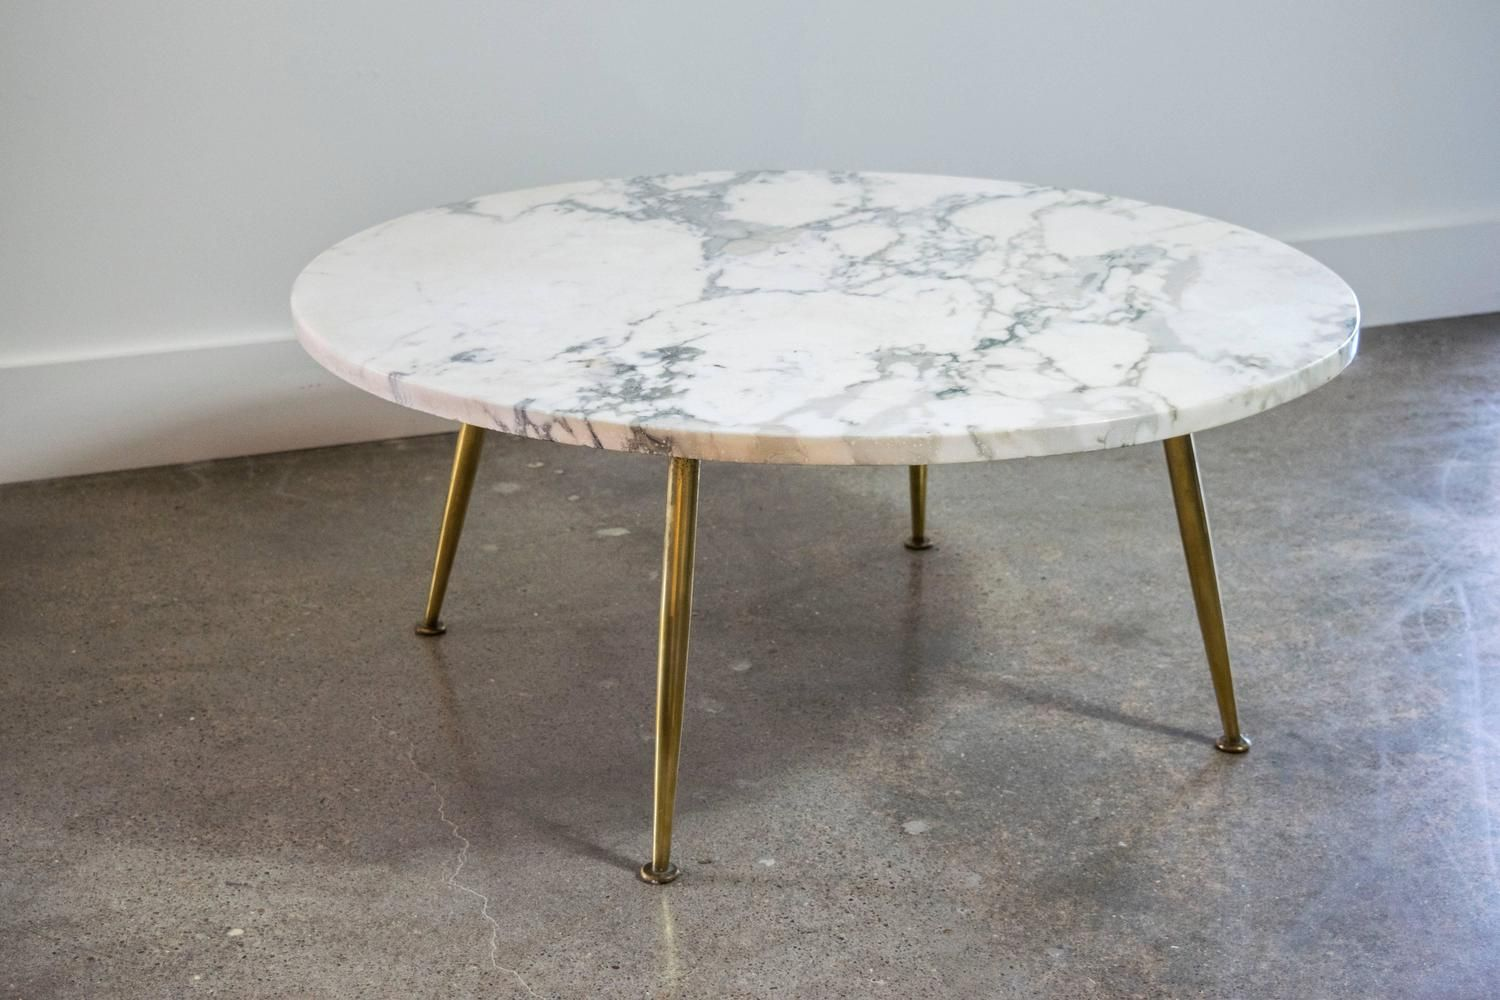 Marble Coffee Table Design Marble Coffee Table Marble Coffee Table Set Marble Coffee Table Coffee Table Marble Coffee Table Set Living Room Decor Modern [ 1000 x 1500 Pixel ]